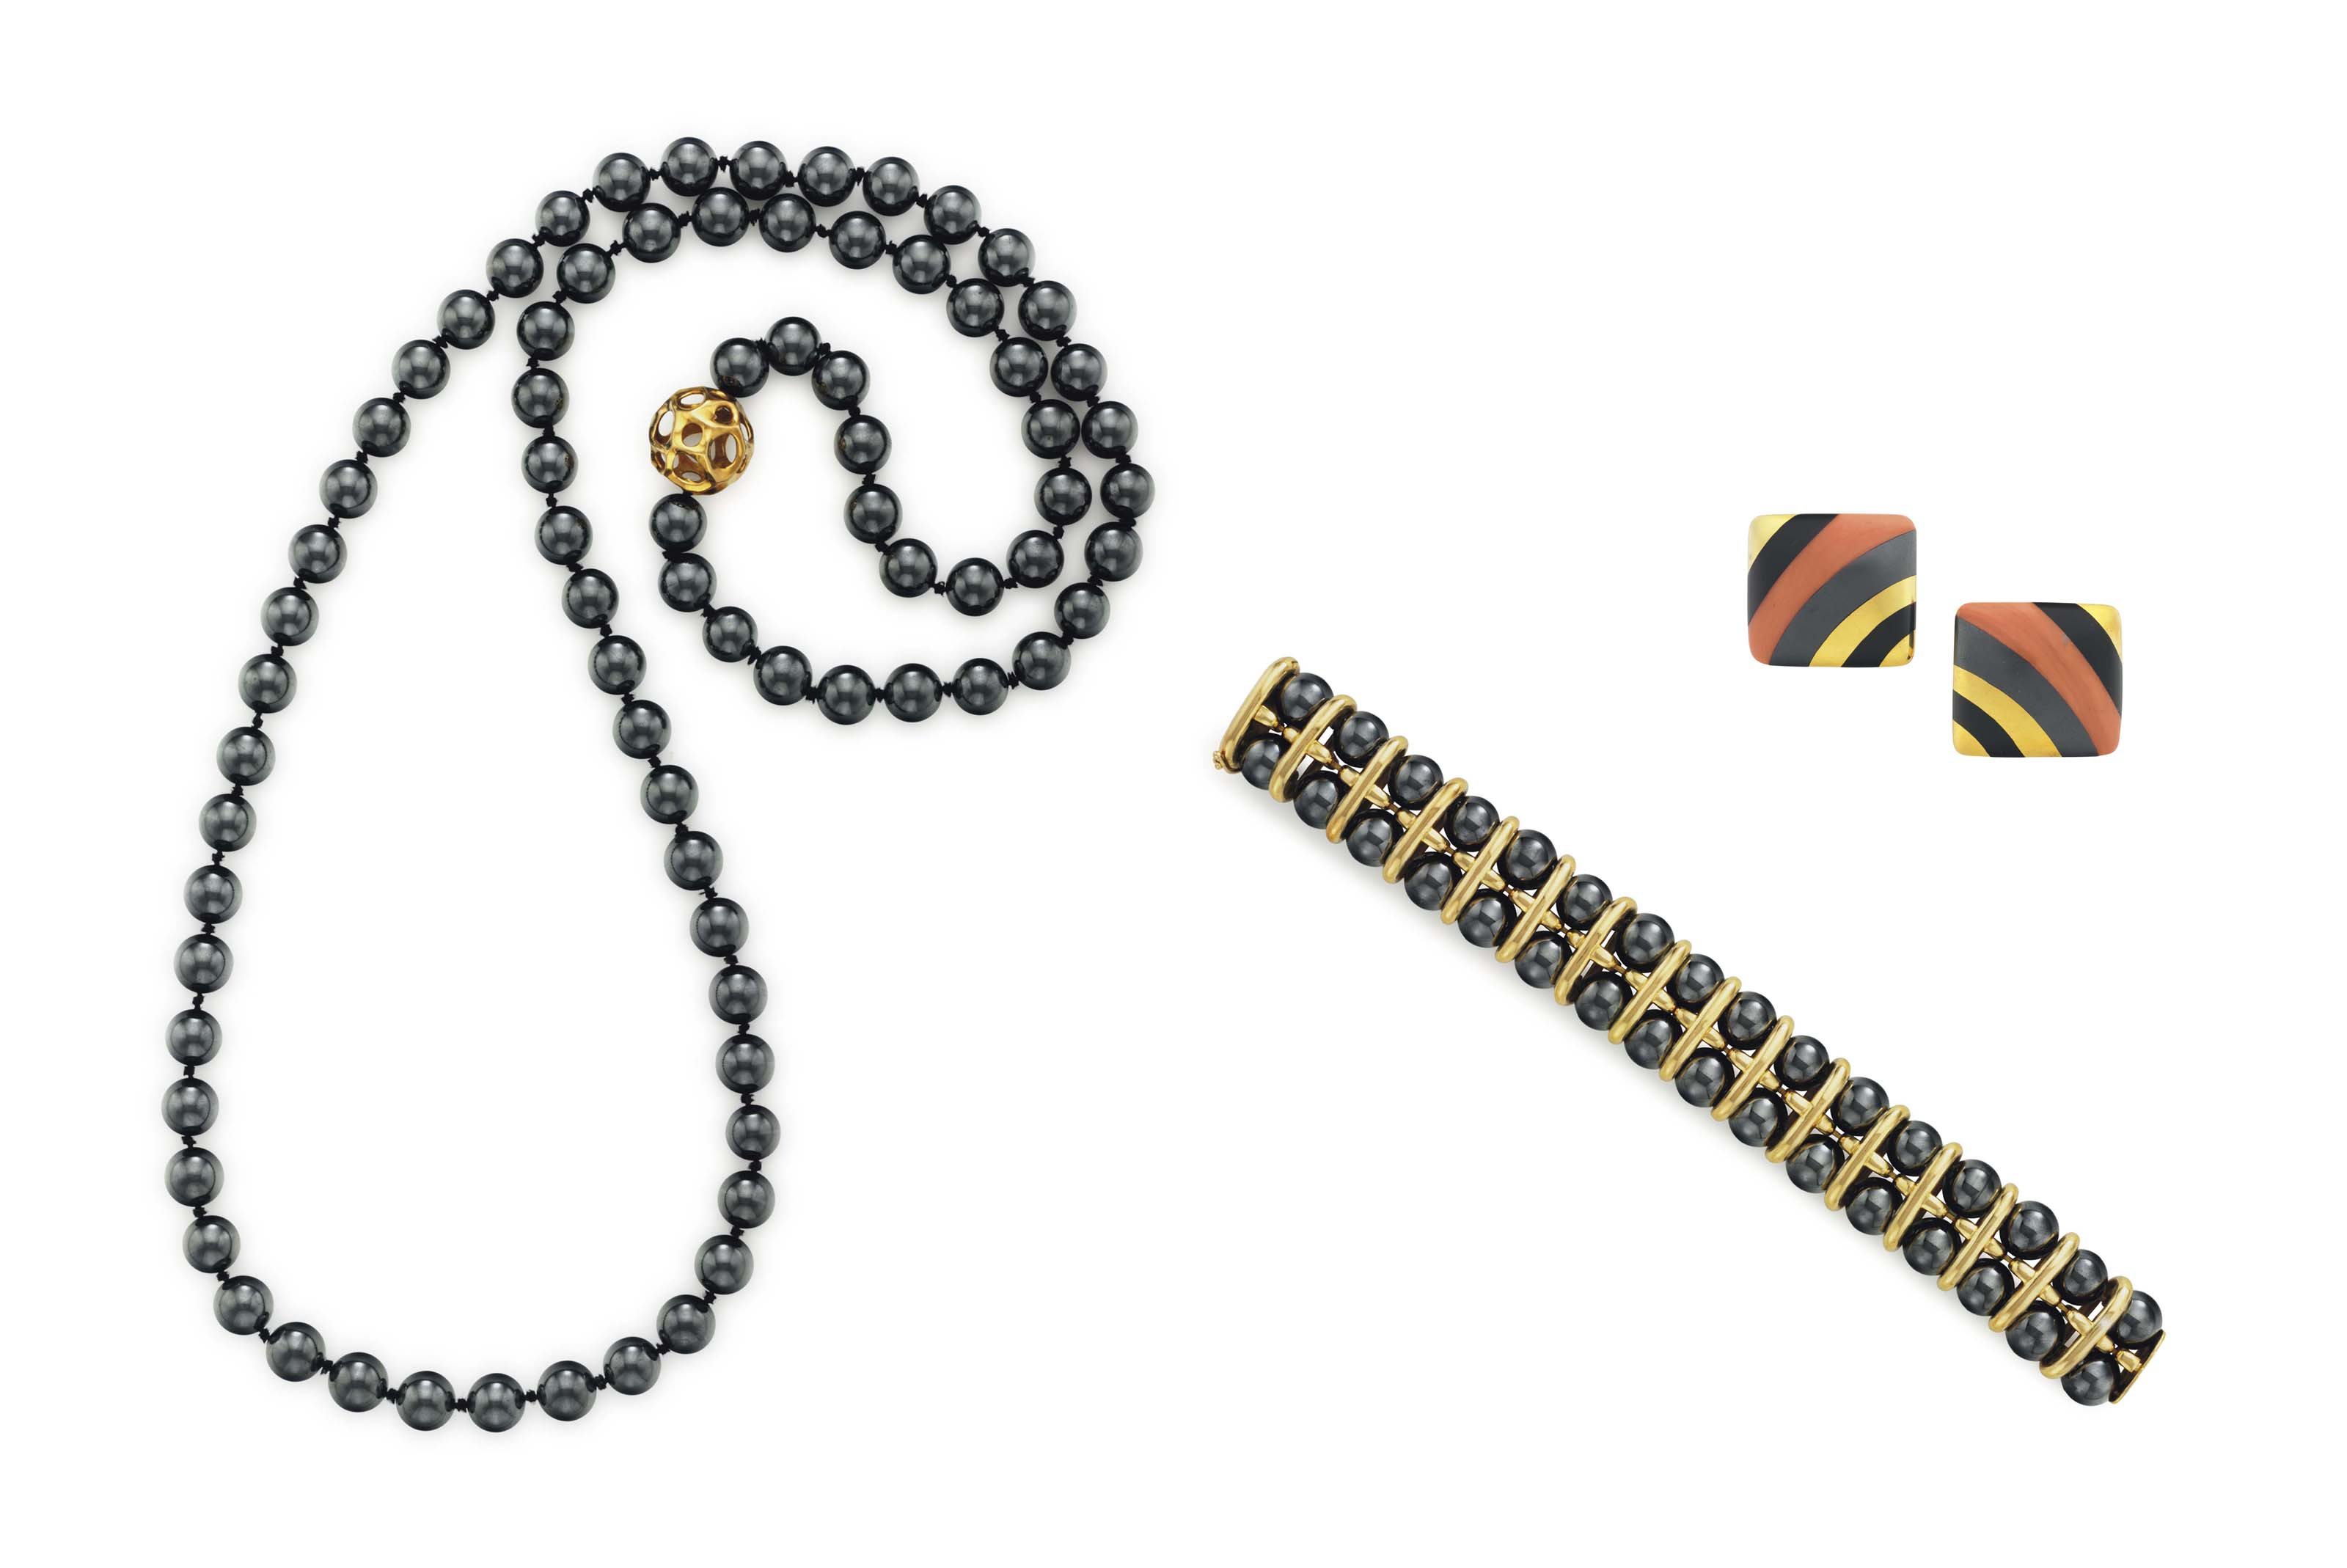 A GROUP OF HEMATITE AND MULTI-GEM JEWELRY